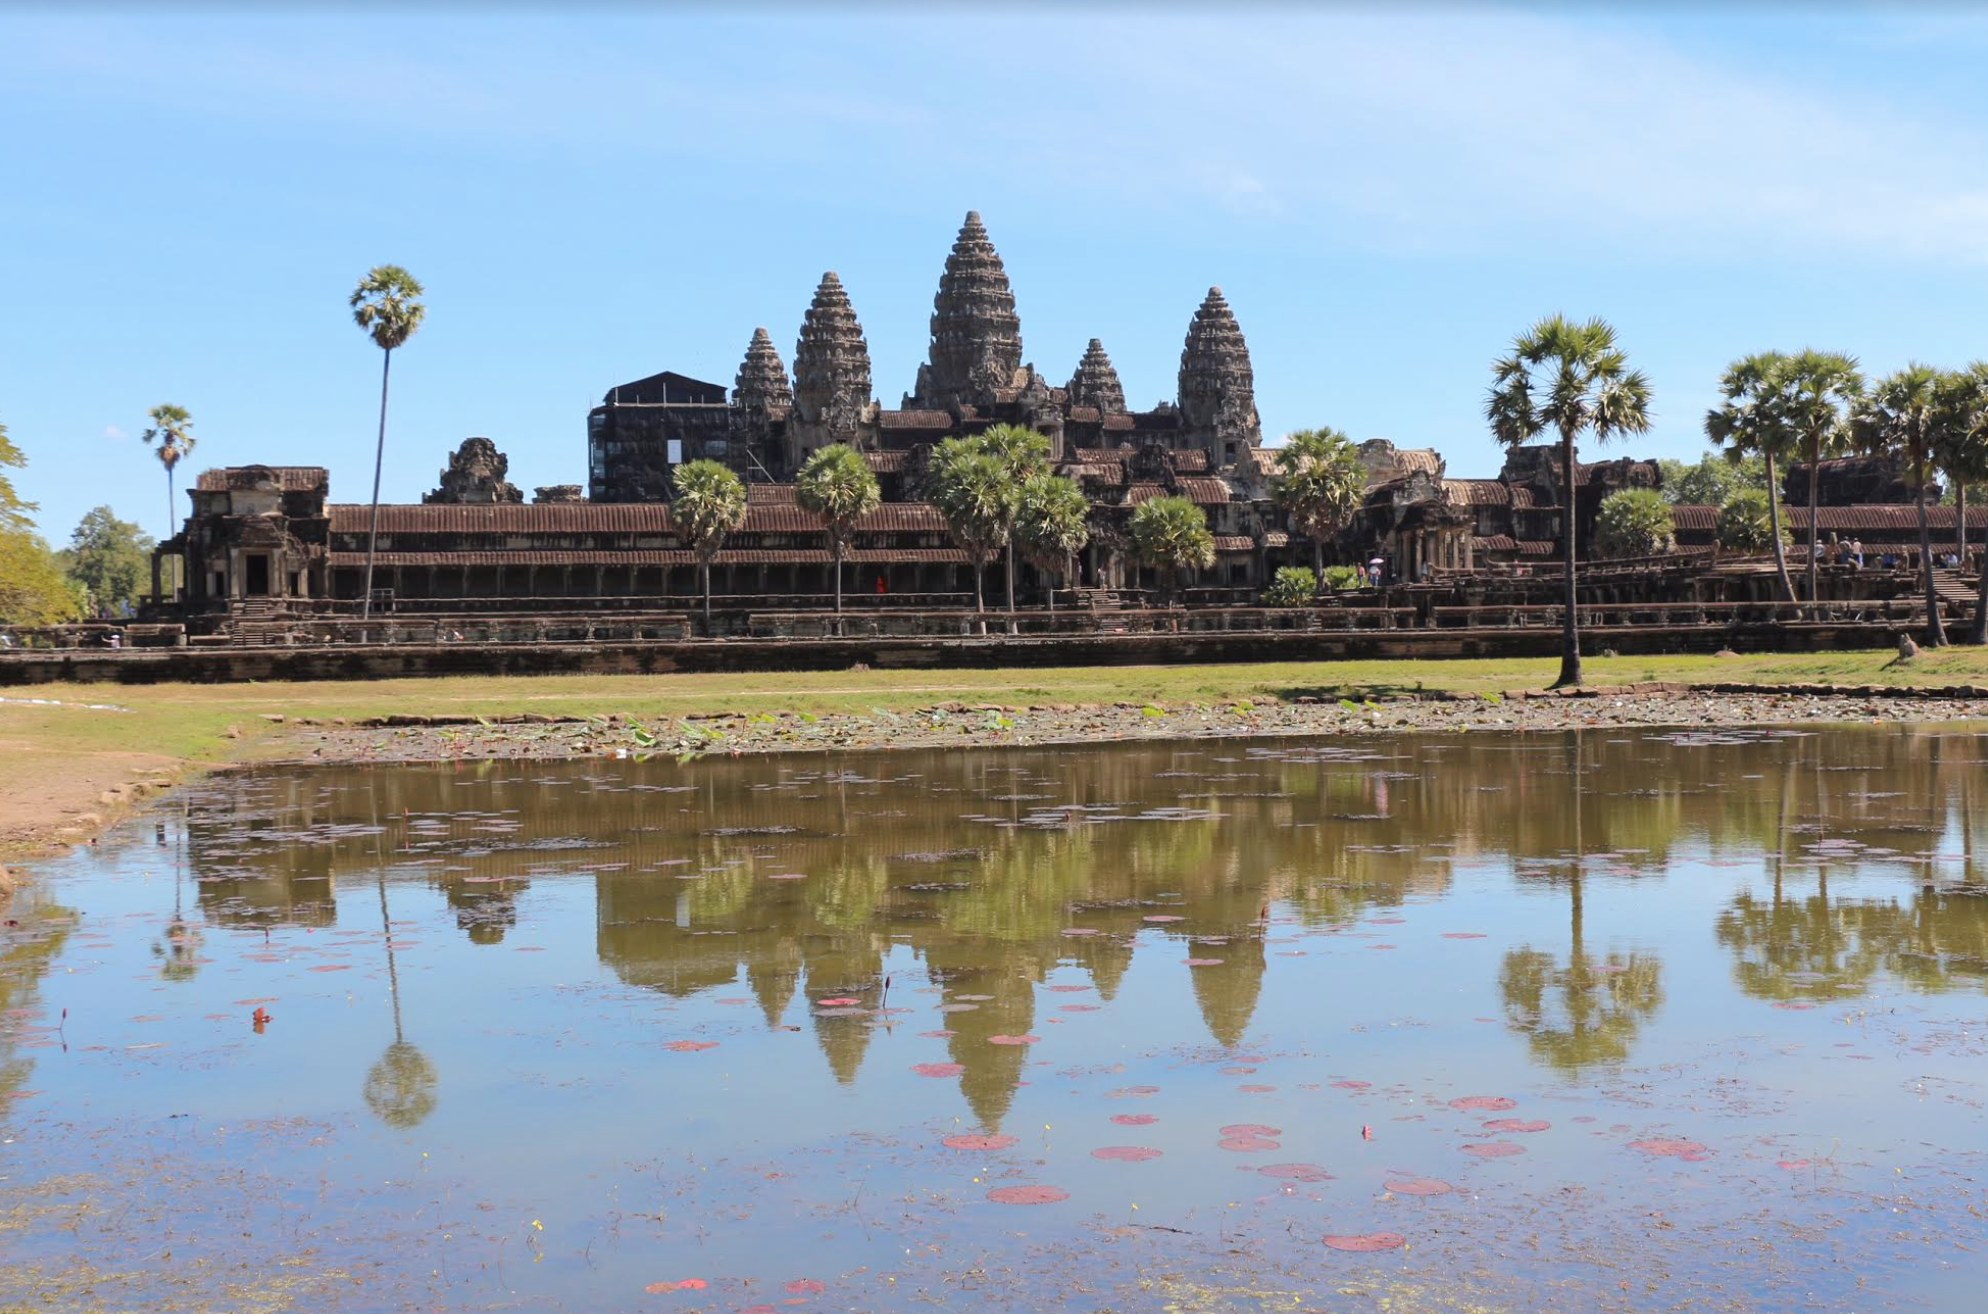 Angkor Wat was constructed using 5-10 million sandstone blocks (some weighing 1.5 tons each)--more than all of the pyramids combined!